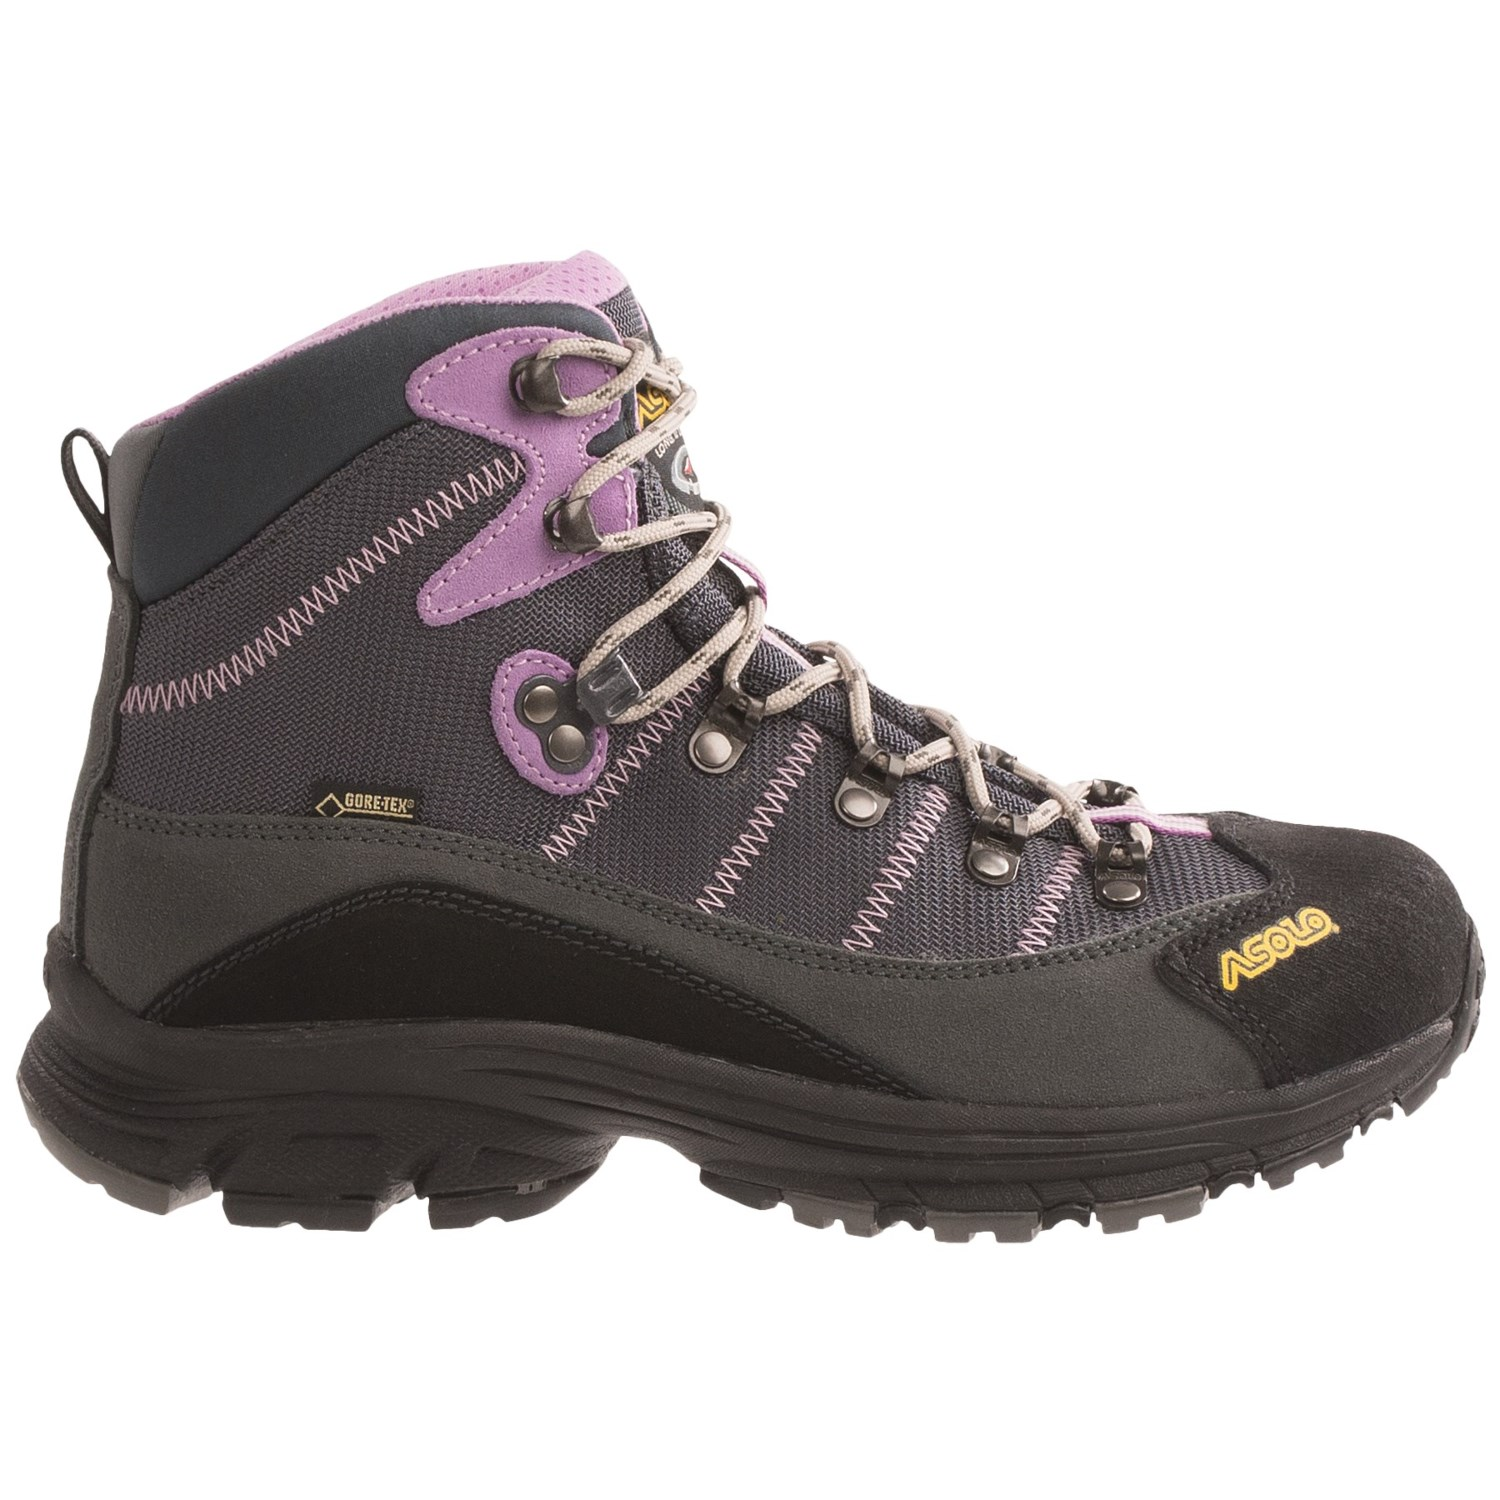 womens hiking boots asolo horizon 1 gore-tex® hiking boots - waterproof (for women) qiejaws